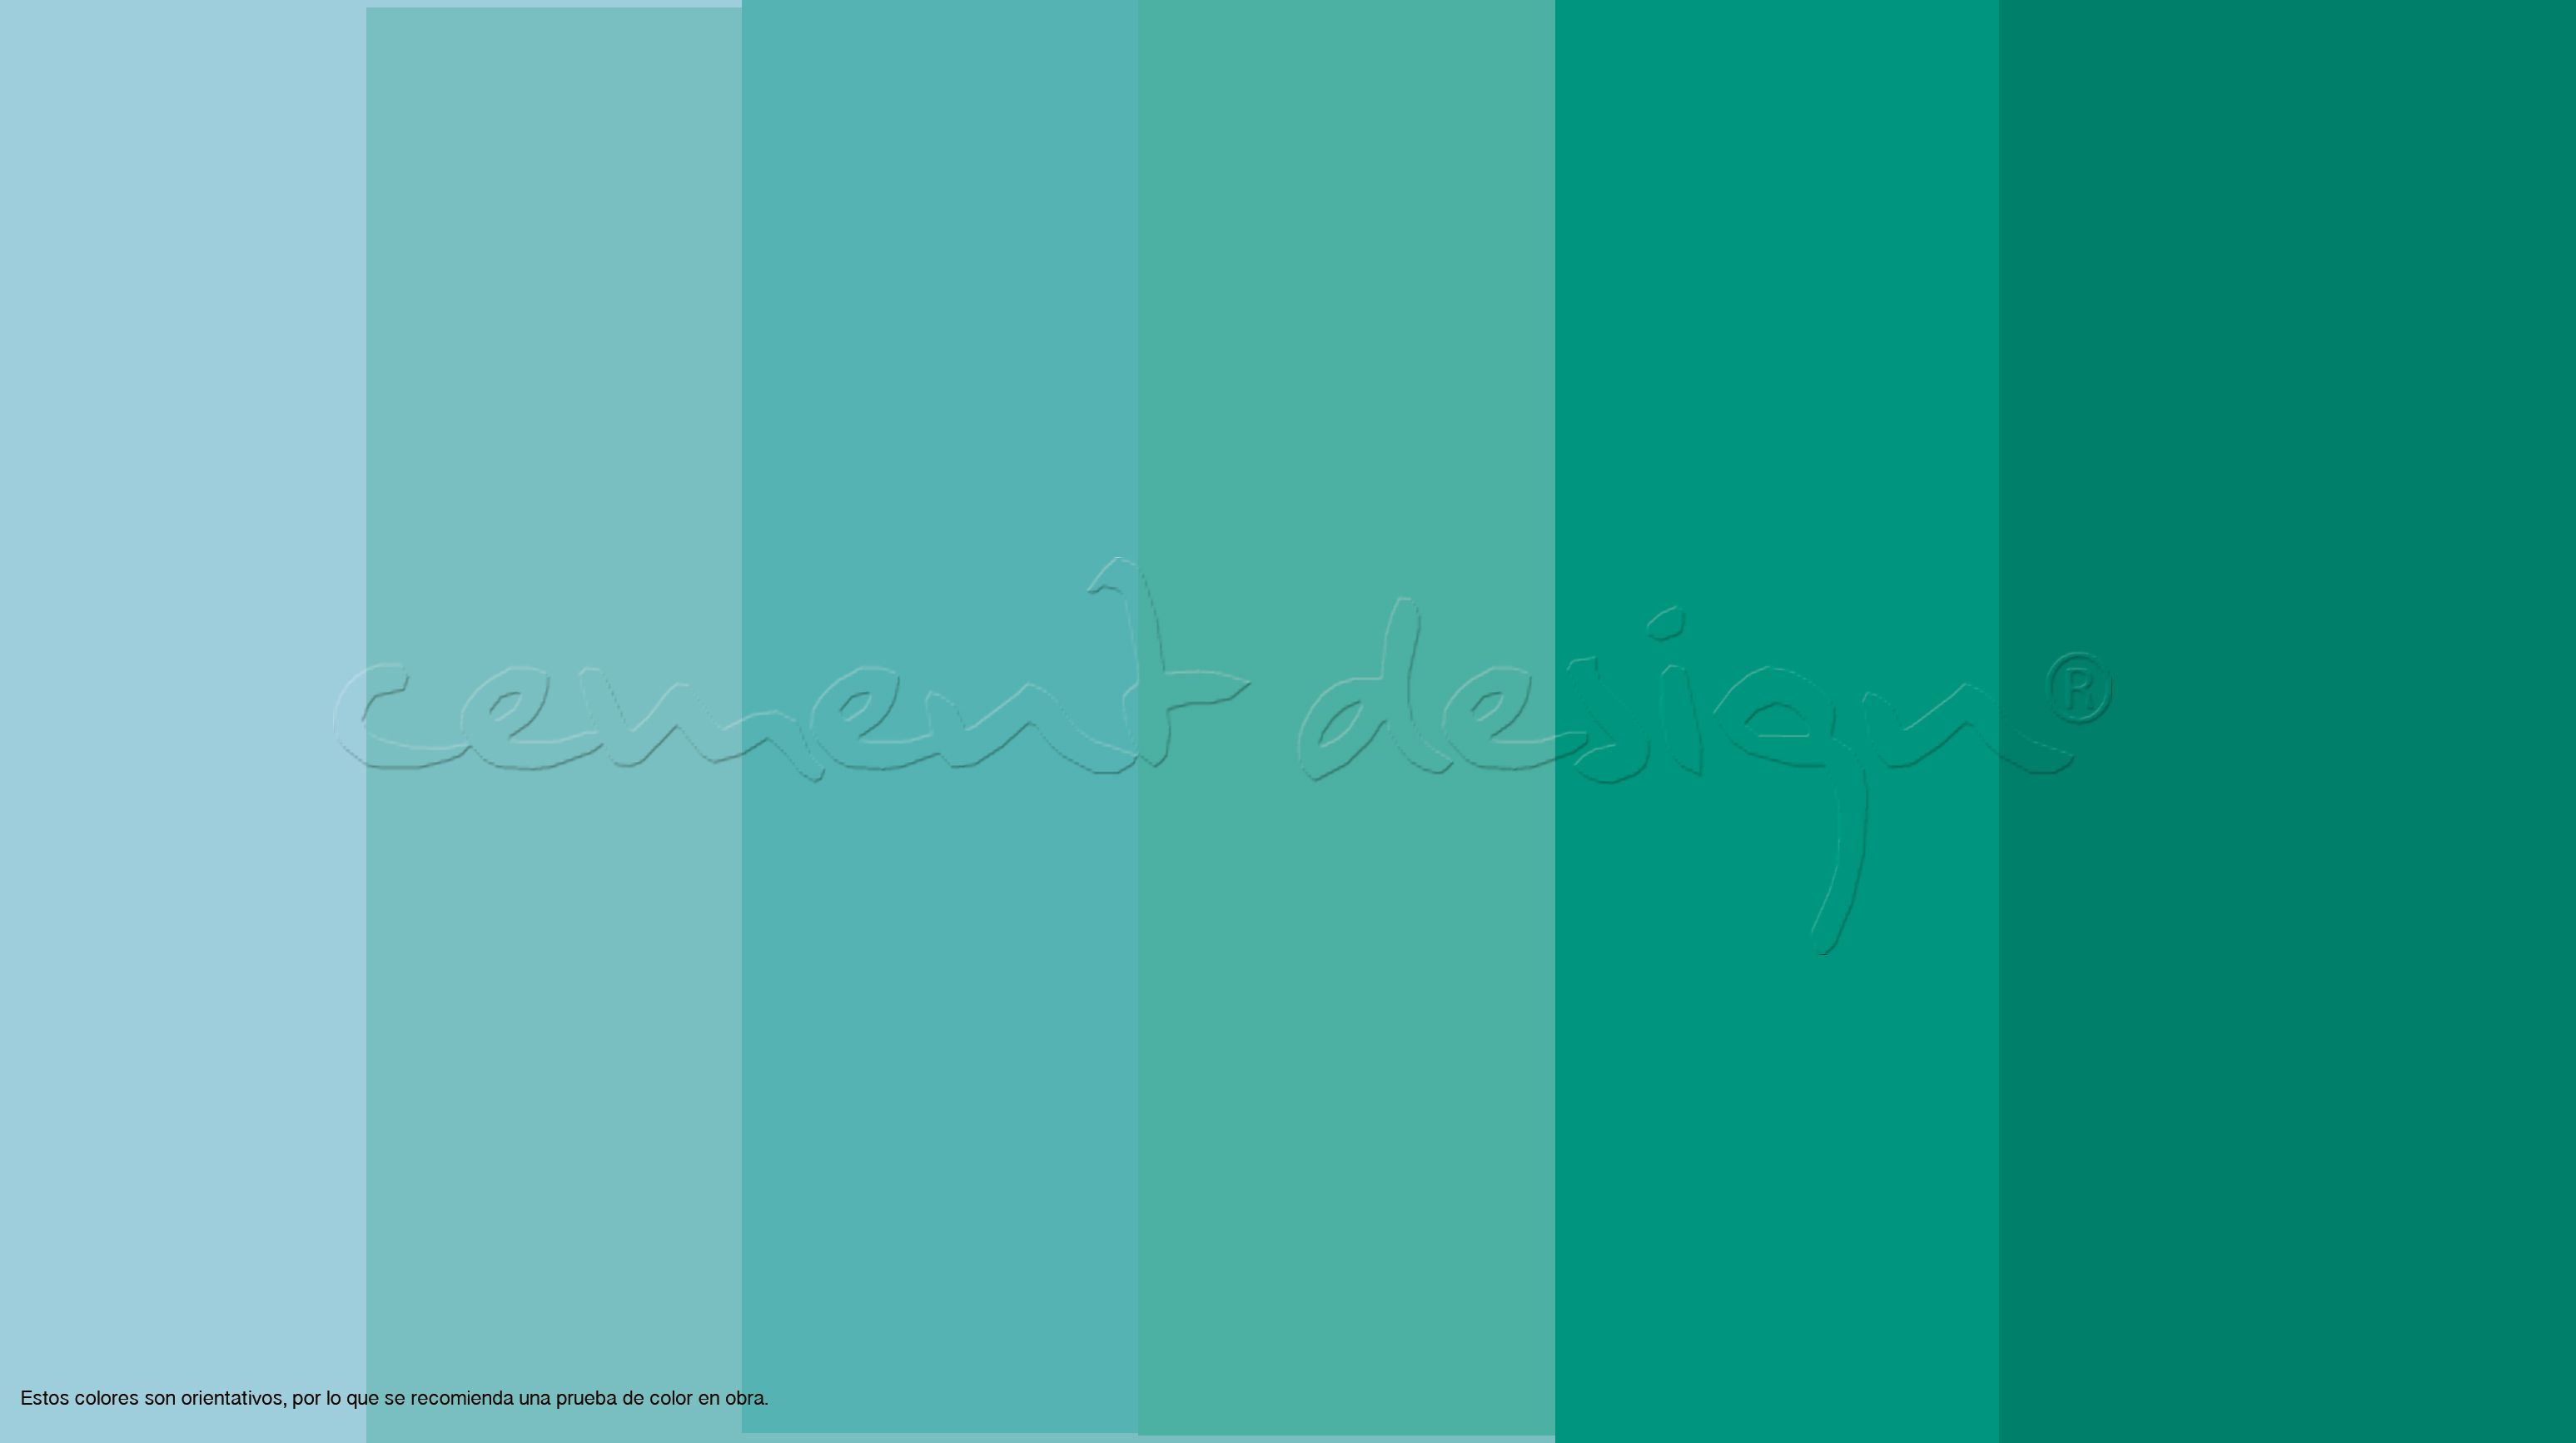 Turquesa roto blended turquoise turquesa suave light for Turquoise colour images